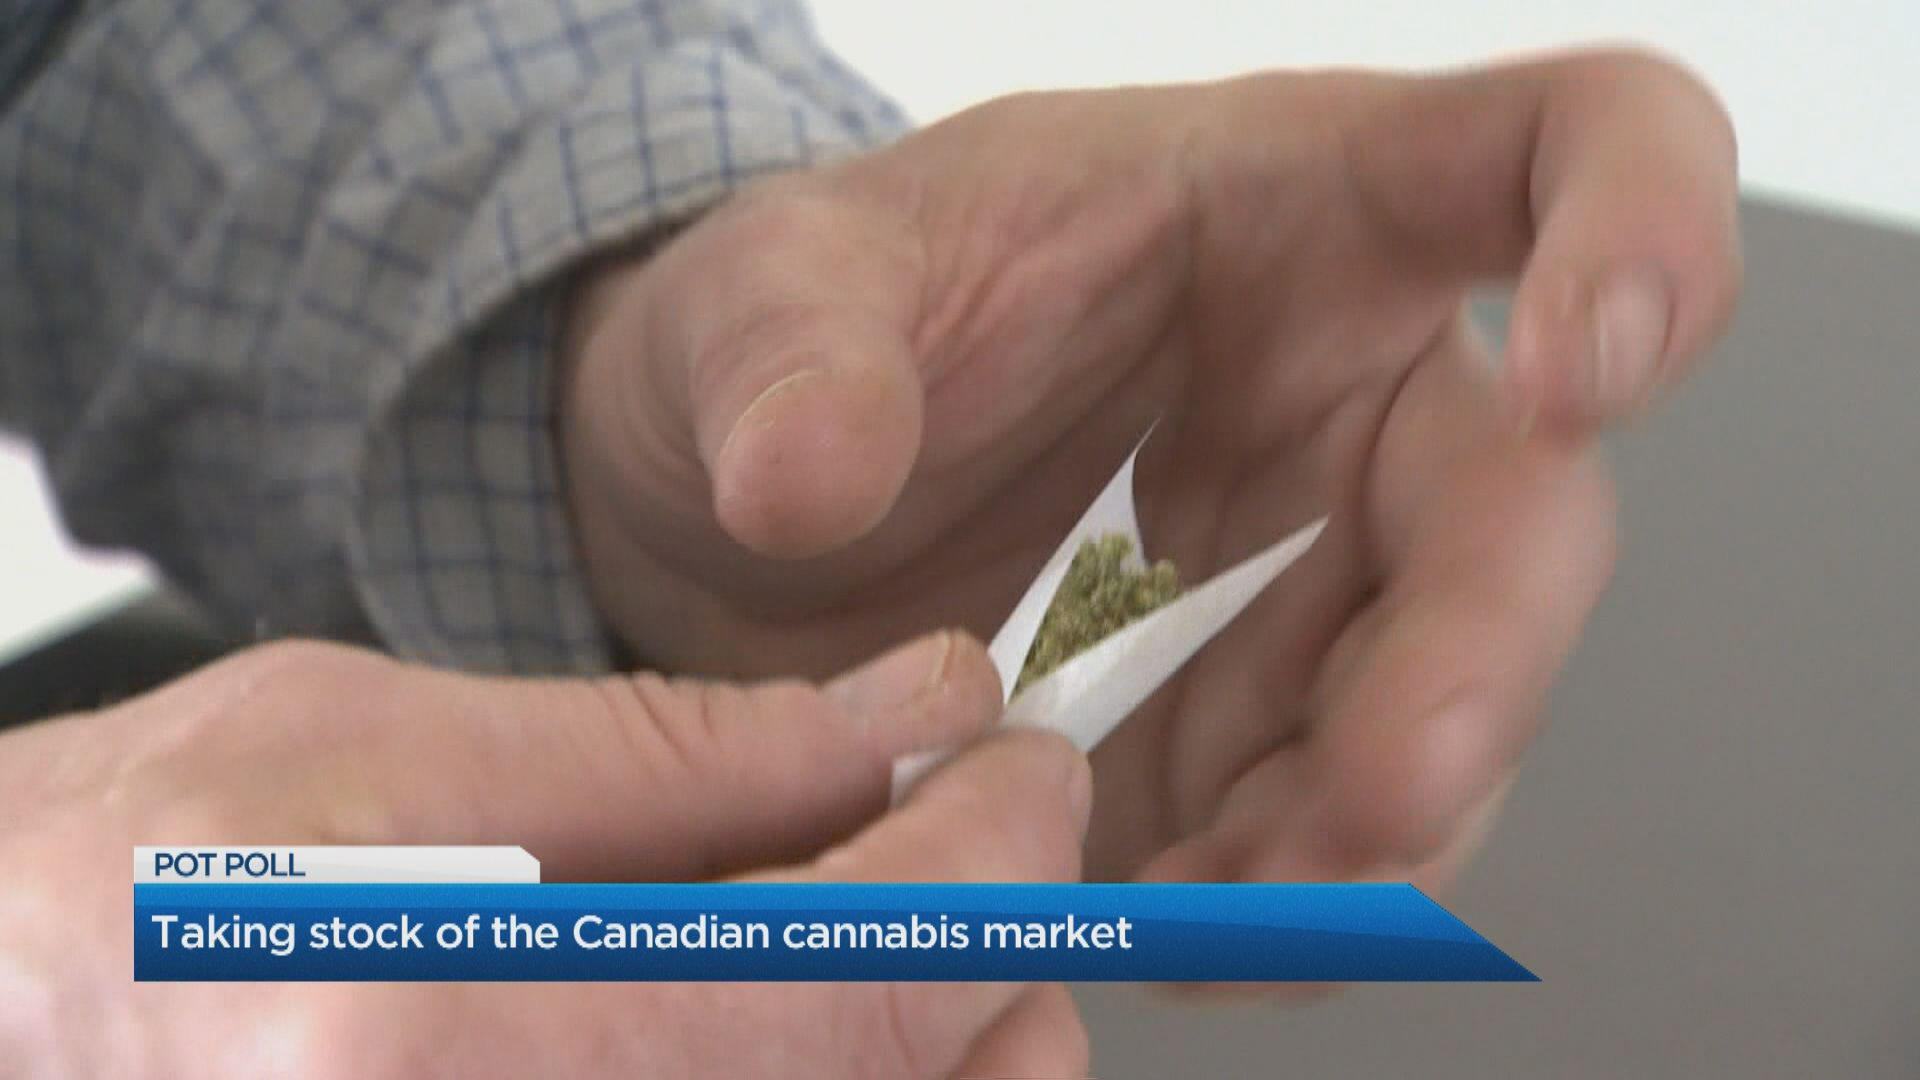 Taking stock of the Canadian cannabis market